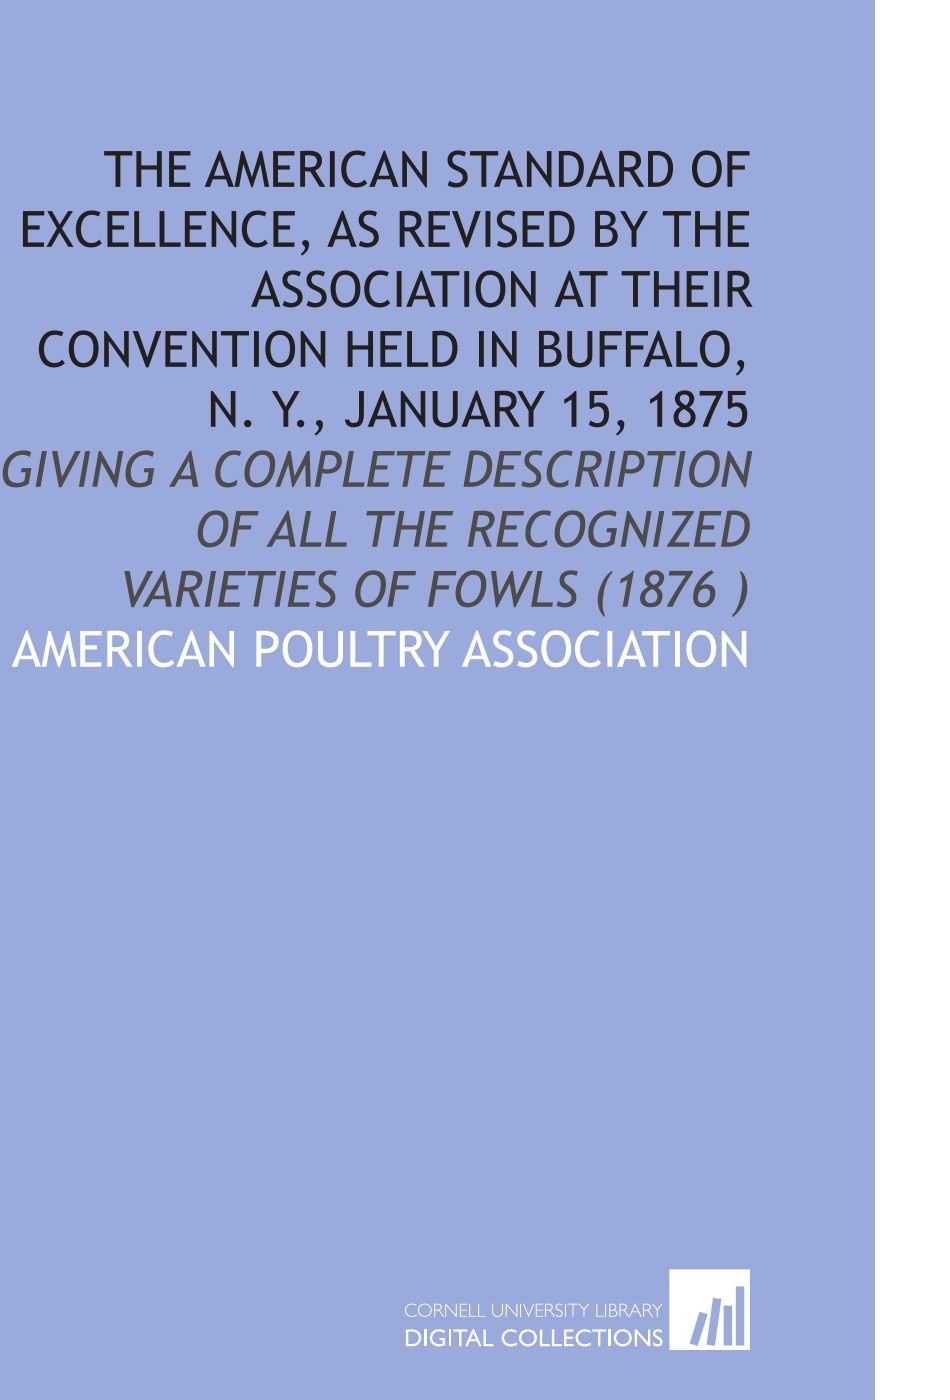 Download The American Standard of Excellence, As Revised by the Association at Their Convention Held in Buffalo, N. Y., January 15, 1875: Giving a Complete ... All the Recognized Varieties of Fowls (1876 ) ebook